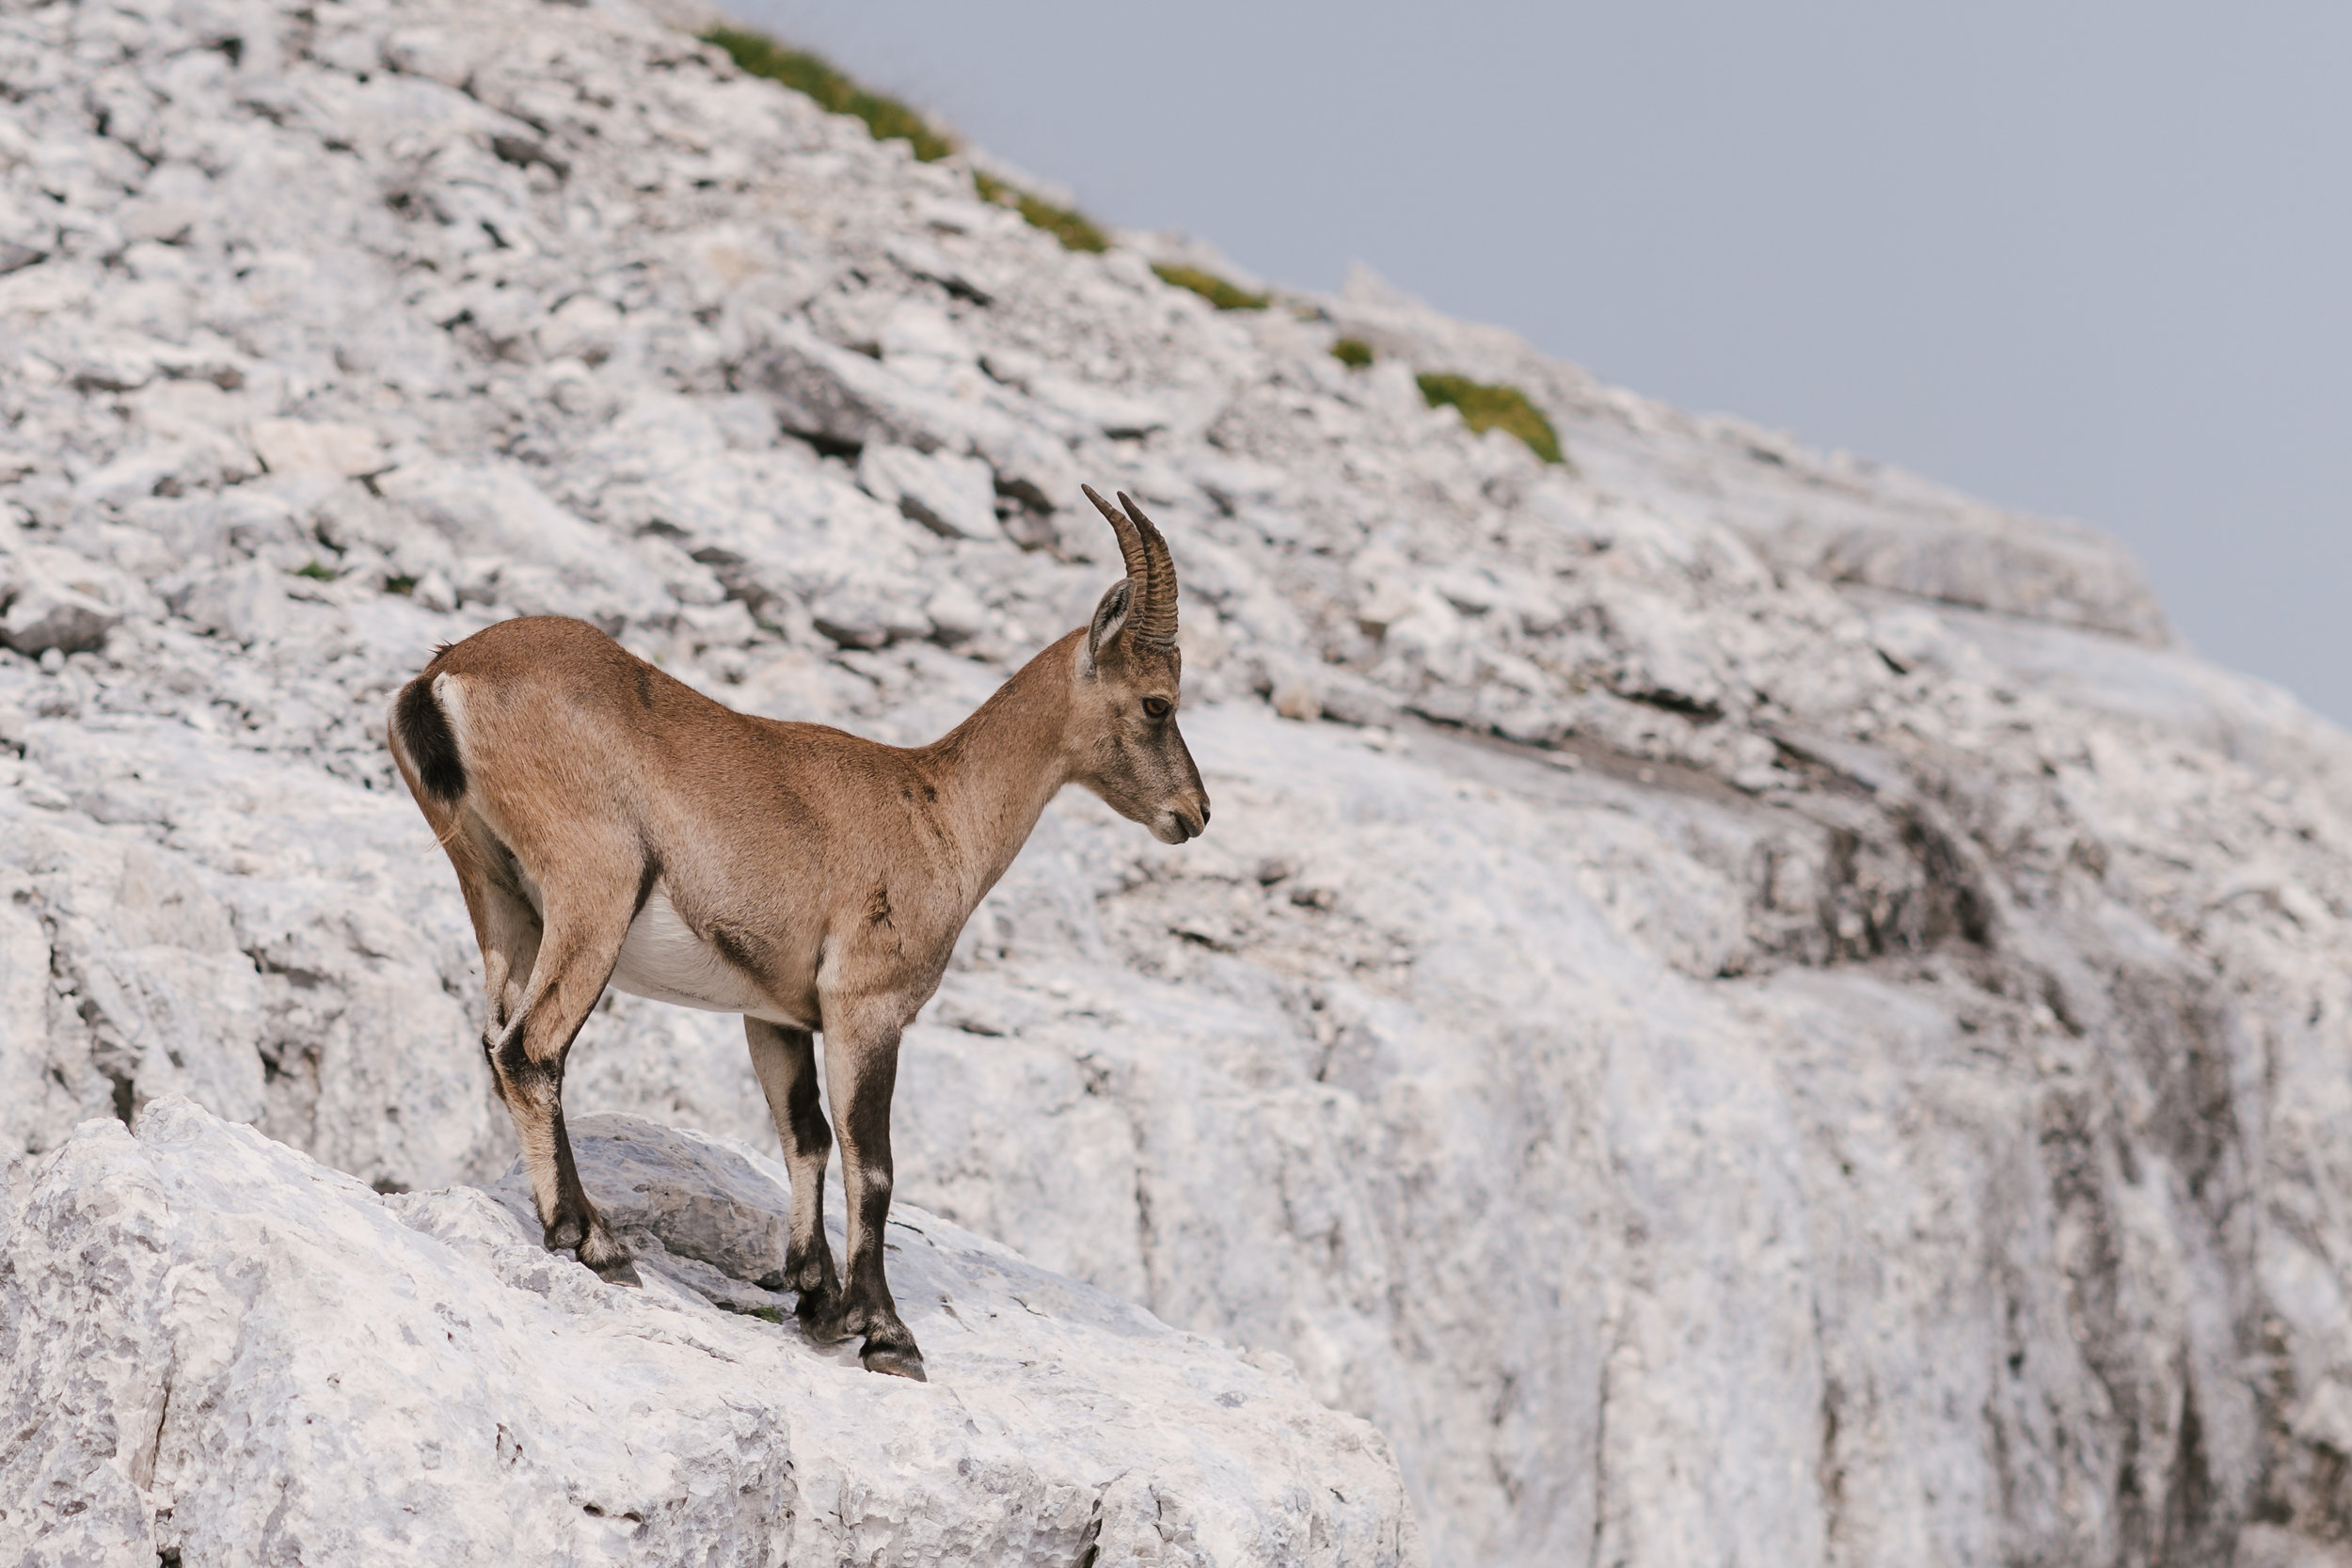 MOUNTAINS - A collection of 24 Alpine landscapes and animals from our beautiful country.